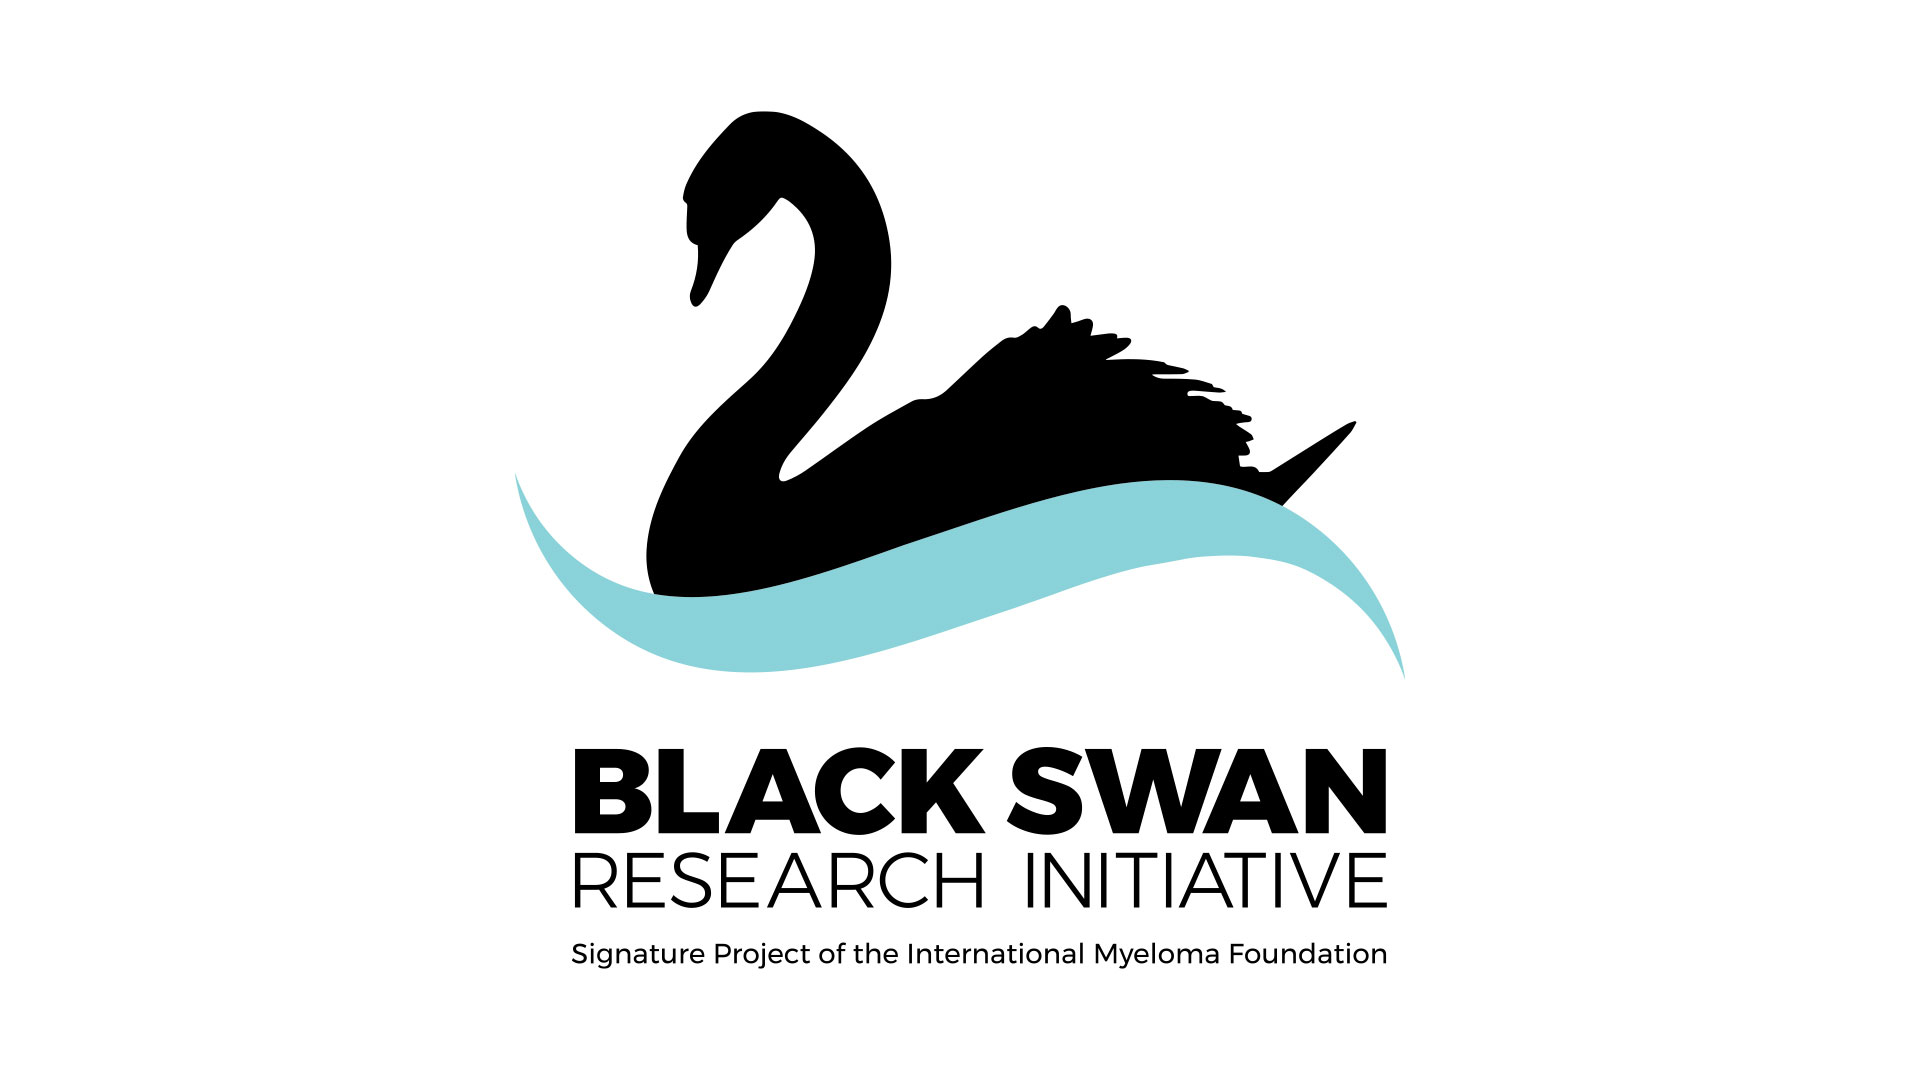 Black Swan Research Initiative logo